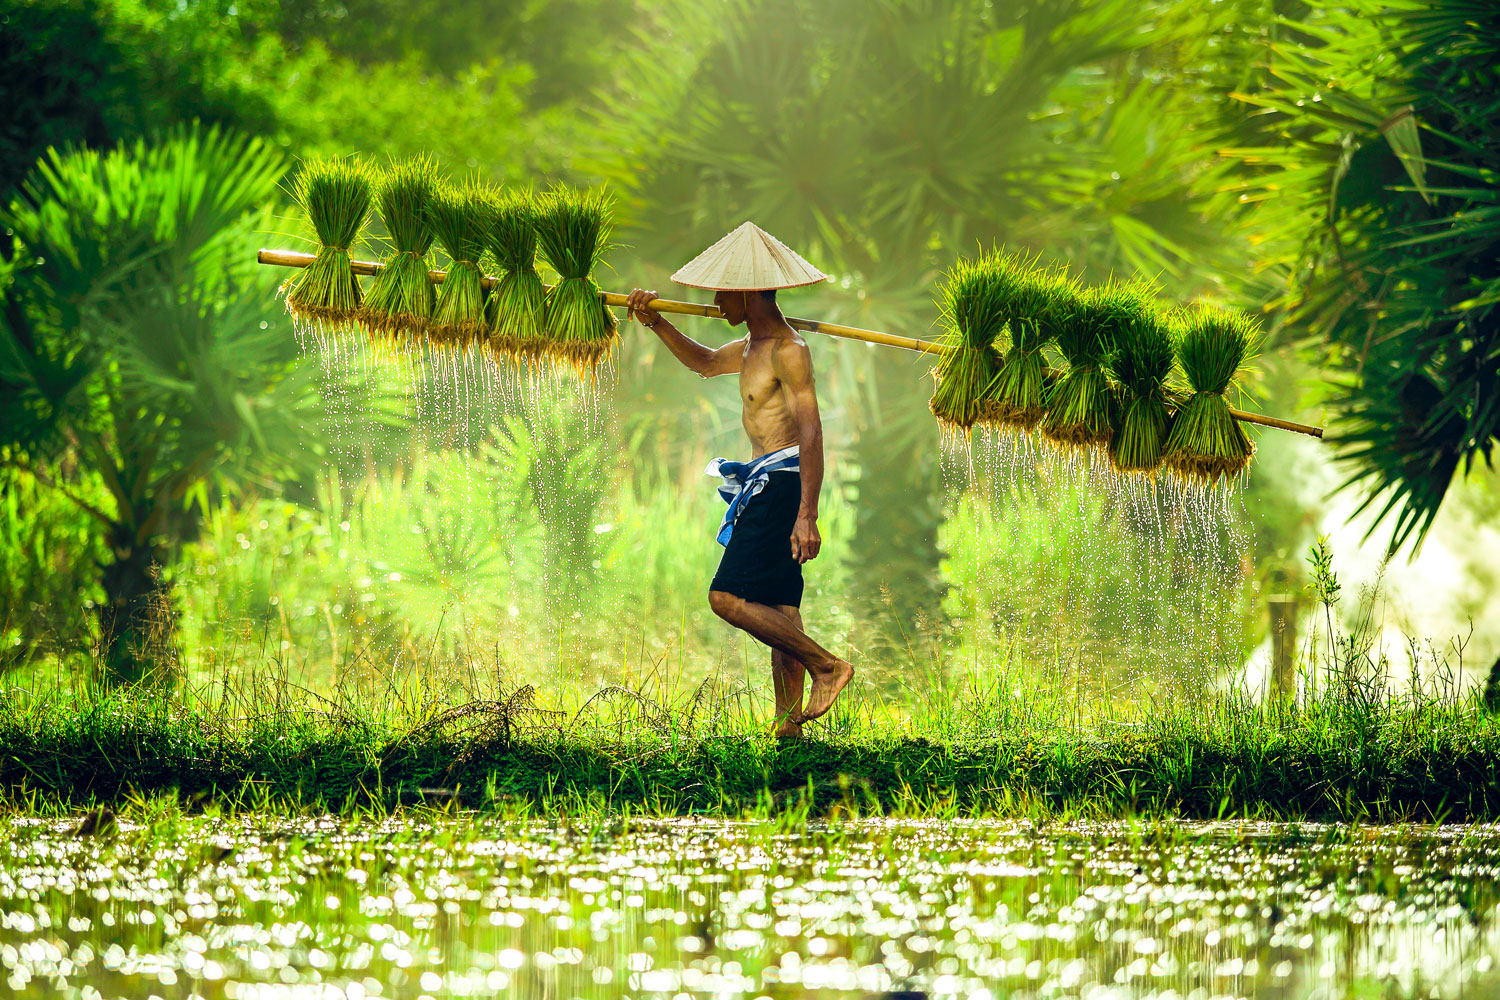 Br24 Colour Correction: local man at river carries rice plants, rice harvest season